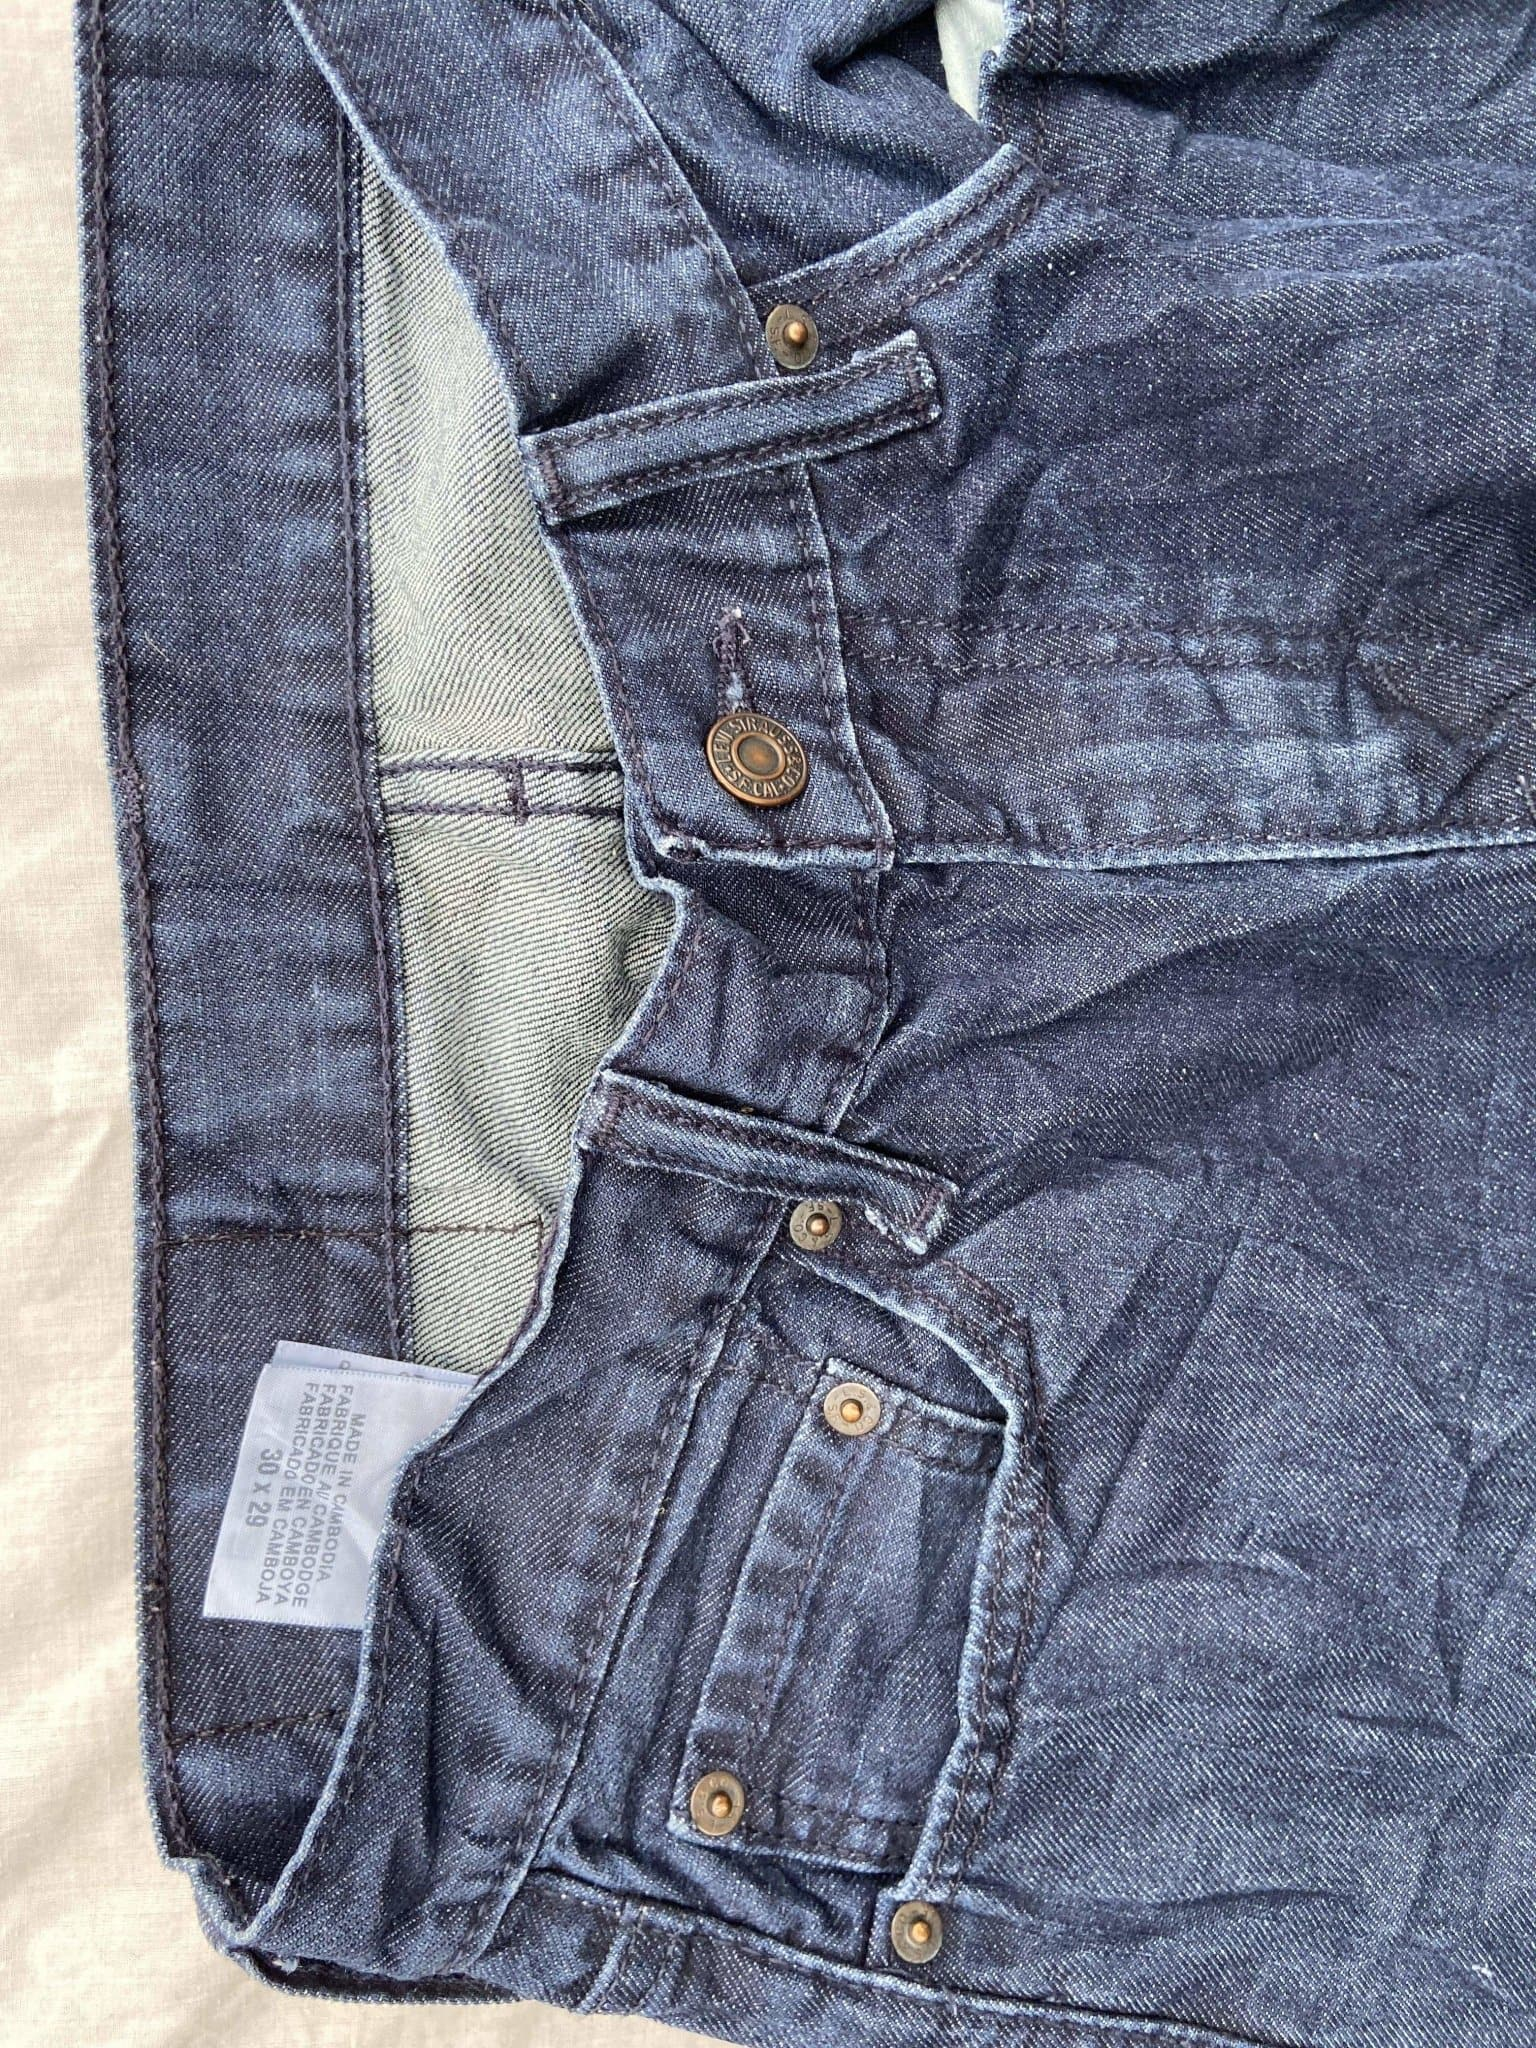 Vintage Levi's 514 Jeans W30 L29 - Discounted Deals UK